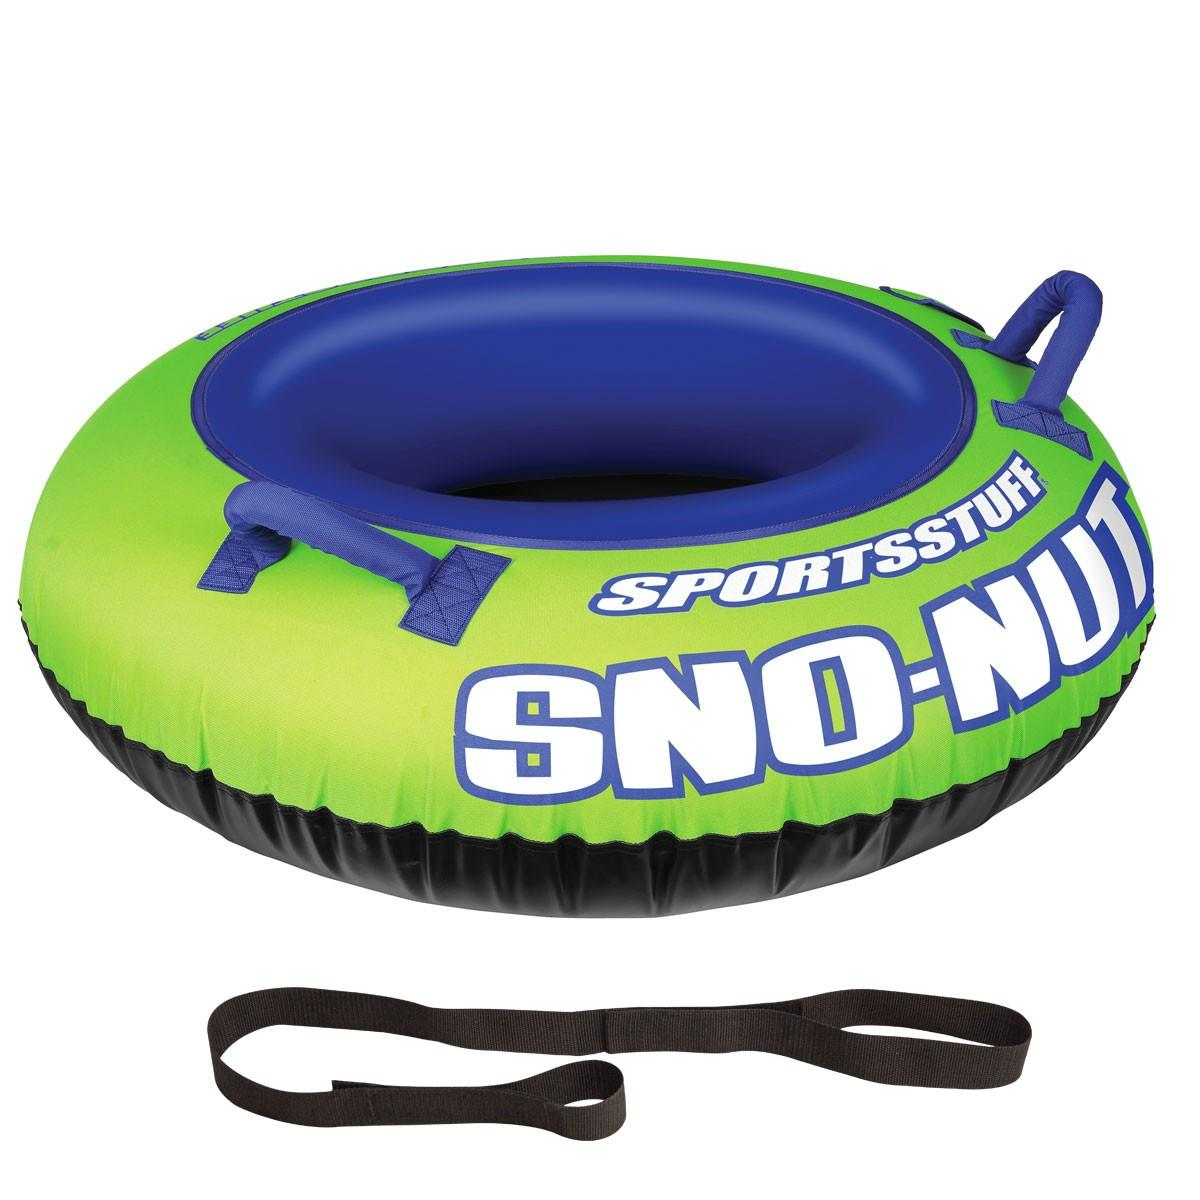 Sportsstuff 30-3201 Sno-Nut Snow Tube by SportsStuff